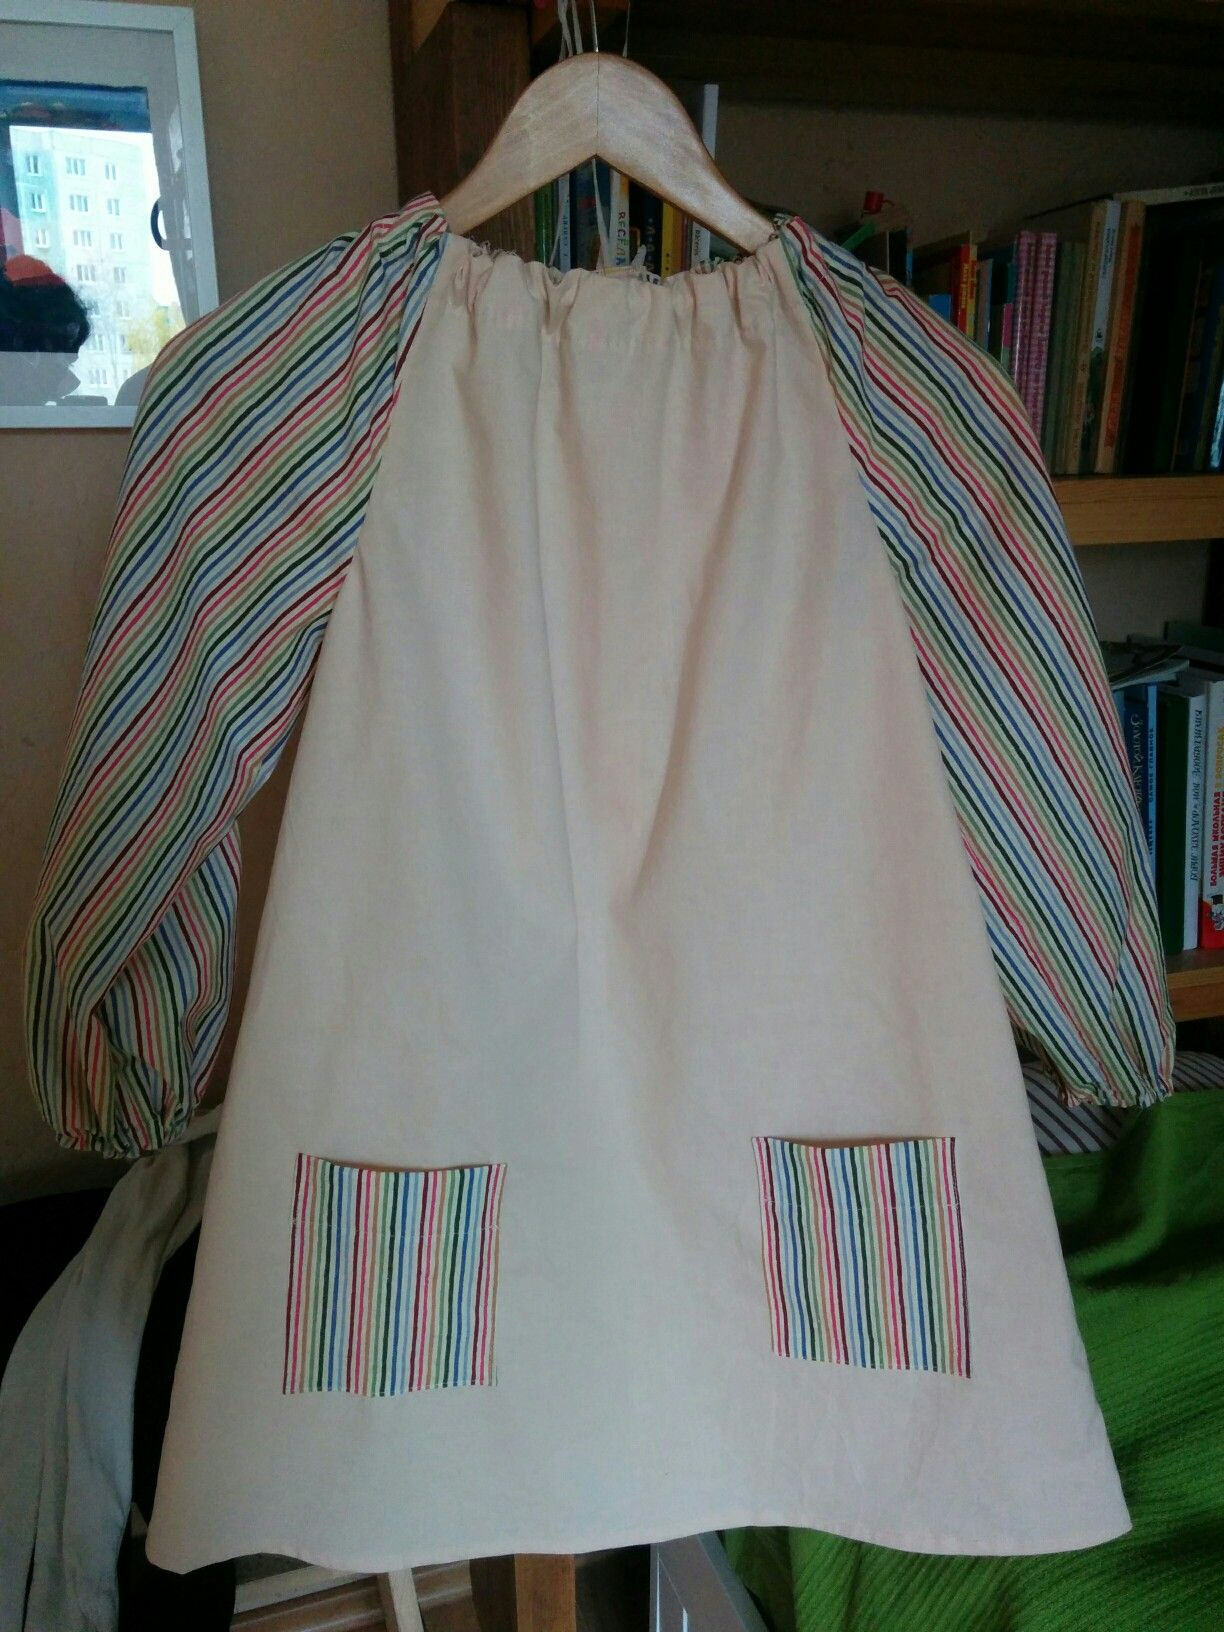 Art smock for my 7 year old daughter Inspired by Little Things to